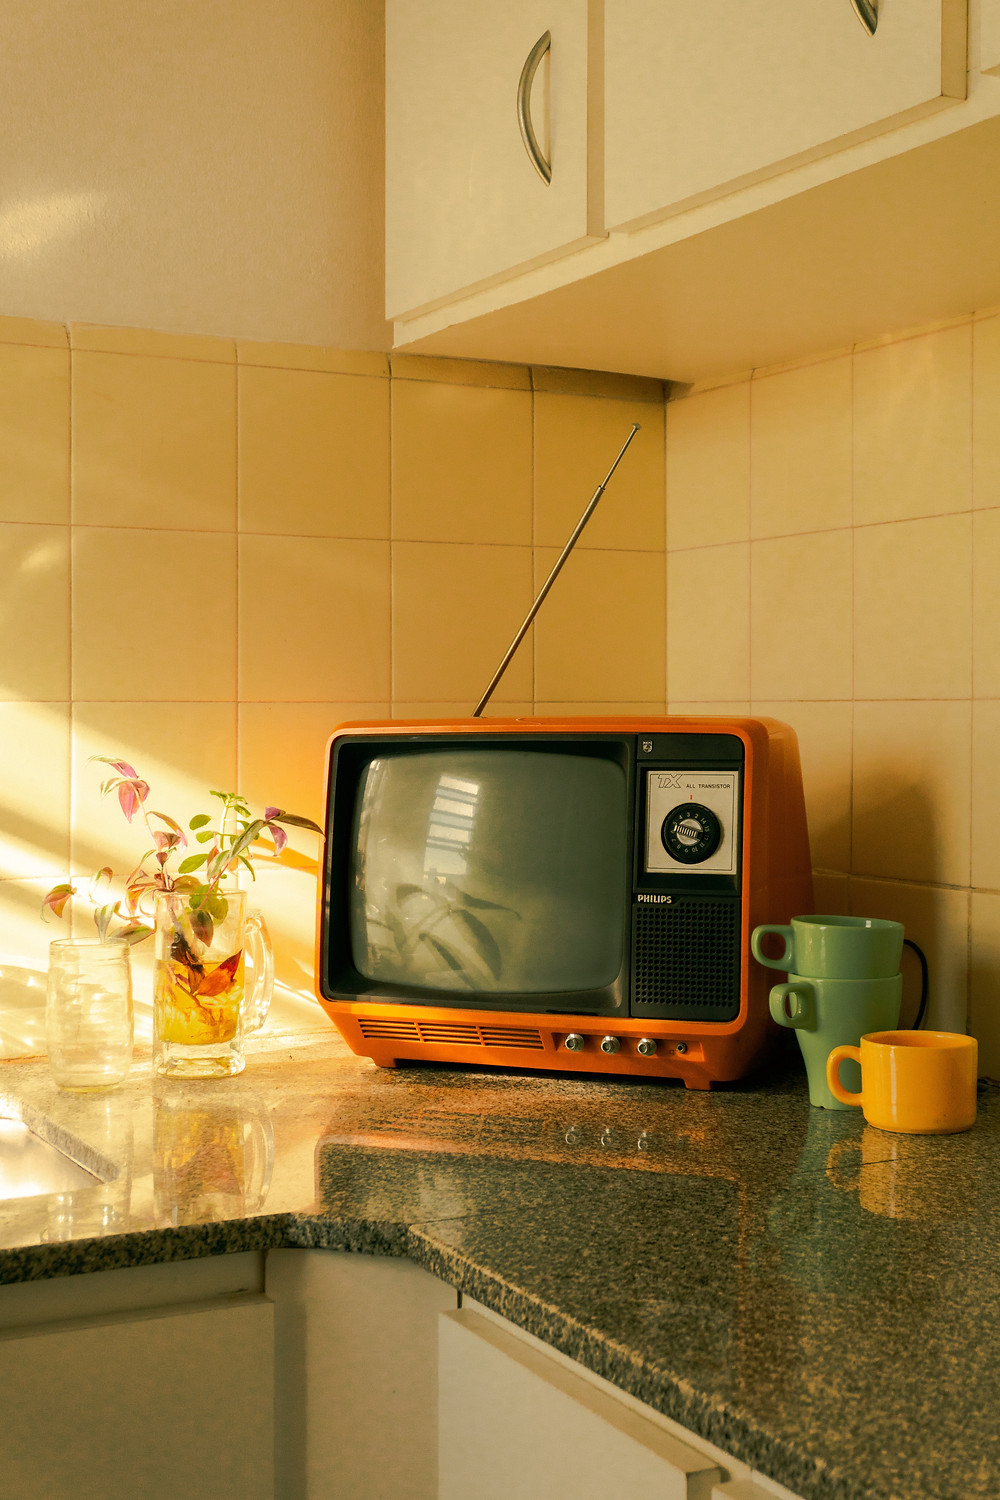 retro TV on top of kitchen counter next to colorful mugs